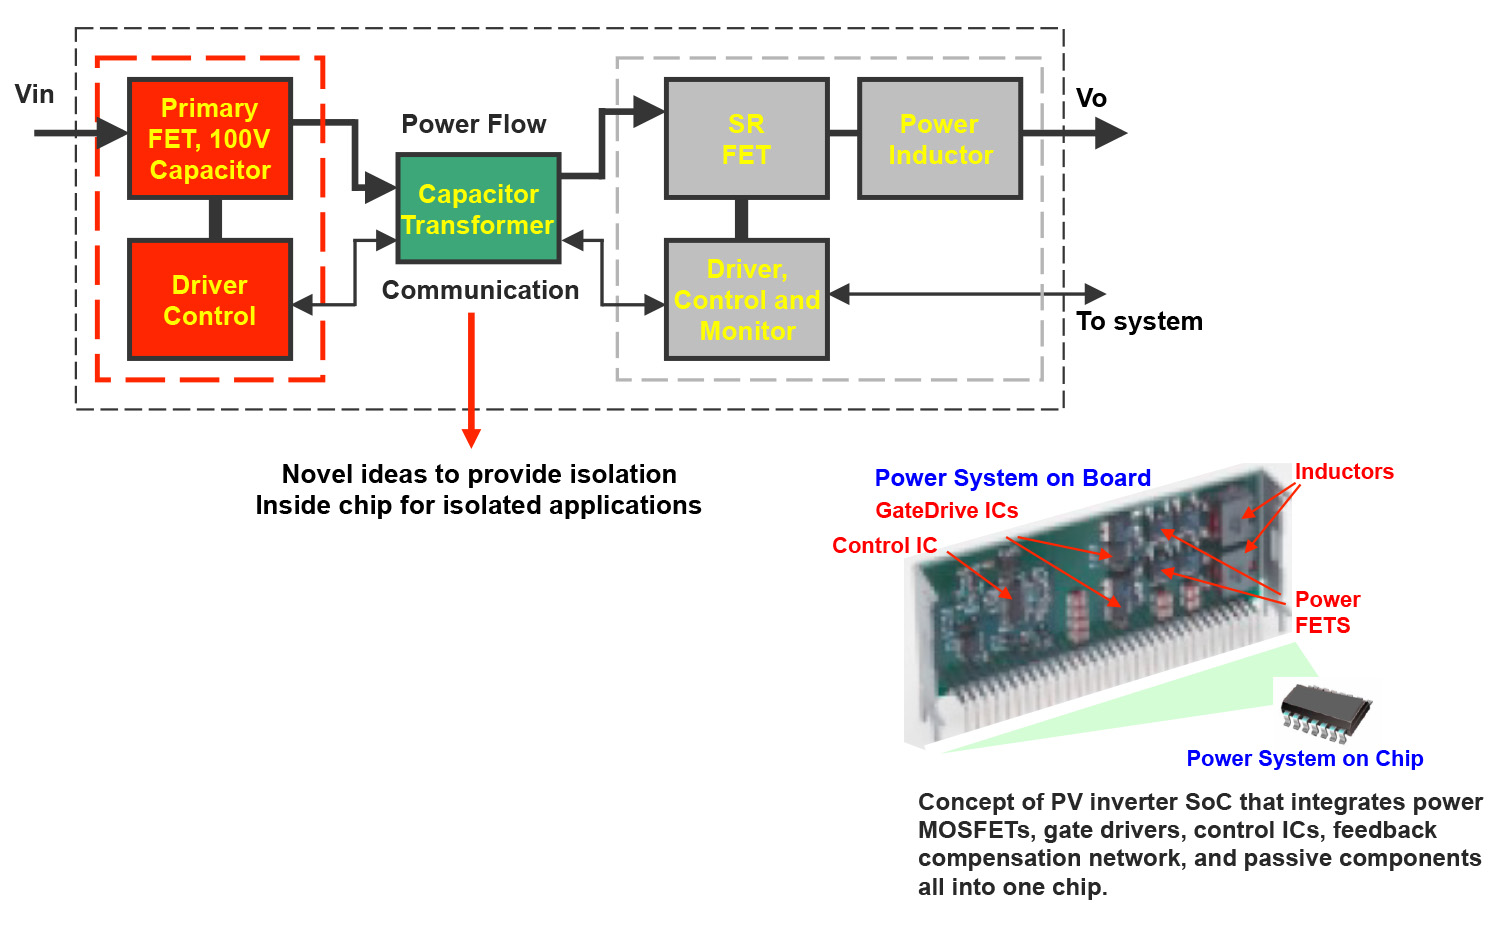 Flow diagram concept of PV inverter SoC that integrates power MOSFETs, gate drivers, control ICs, feedback compensation network, and passive components all into one chip.